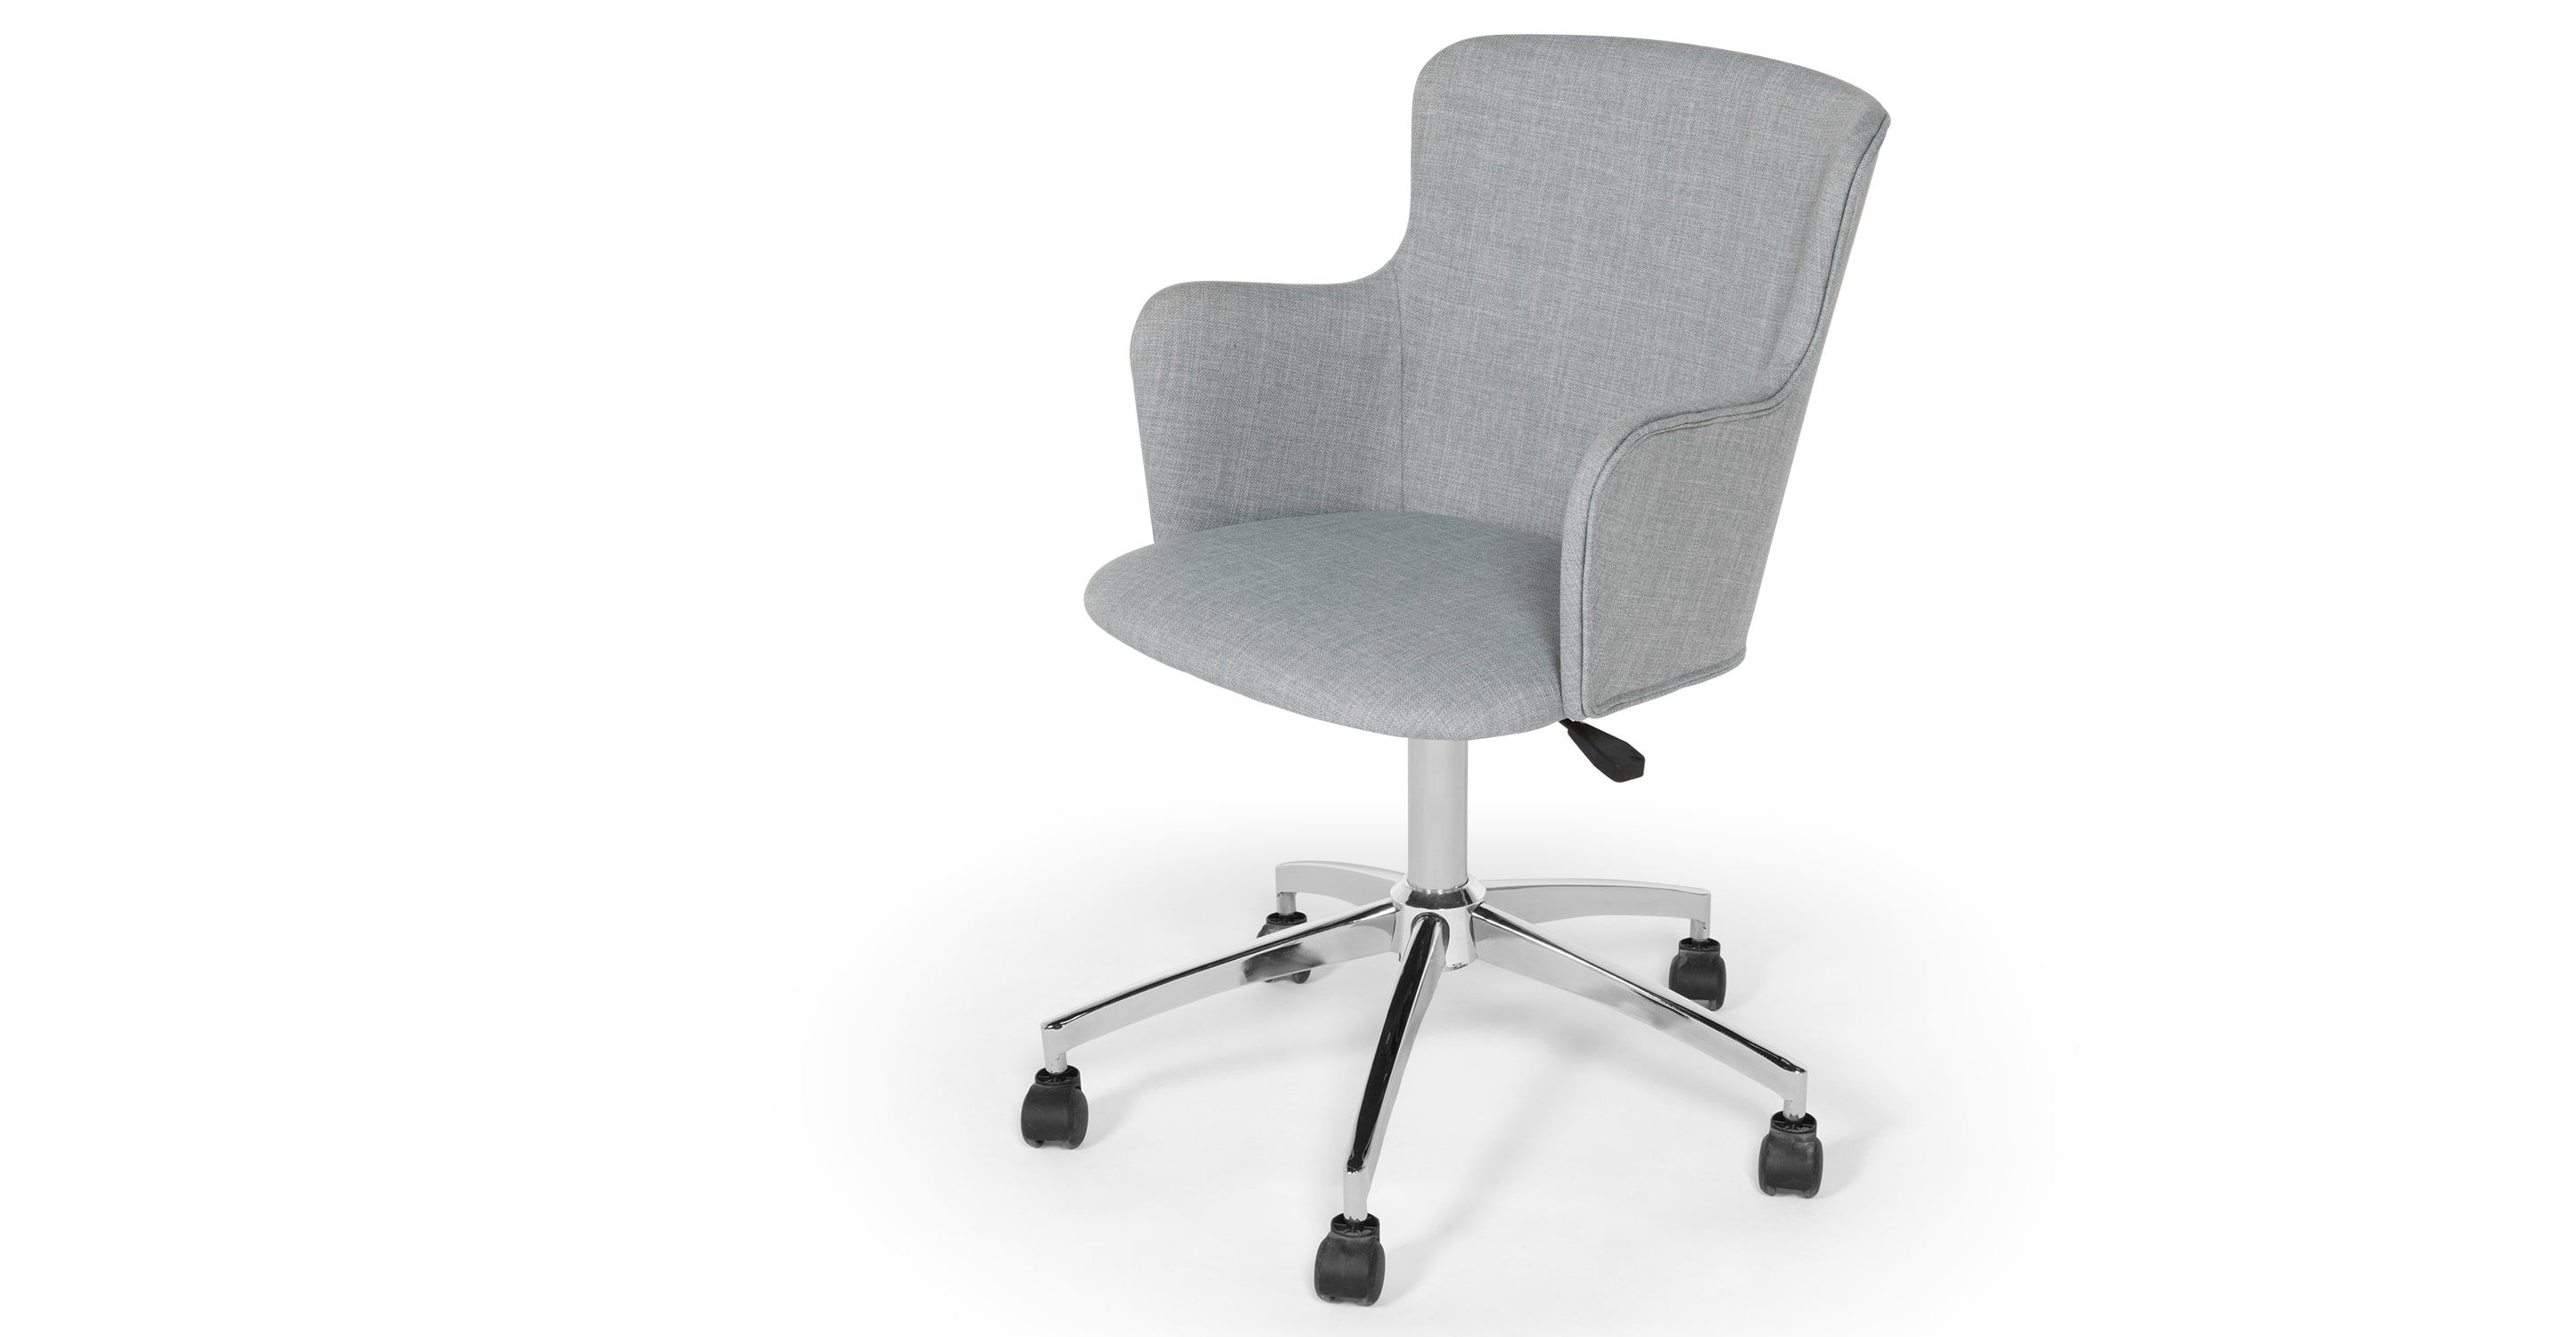 Winona Office Chair Print Grey Office Chair Chair Printed Chair